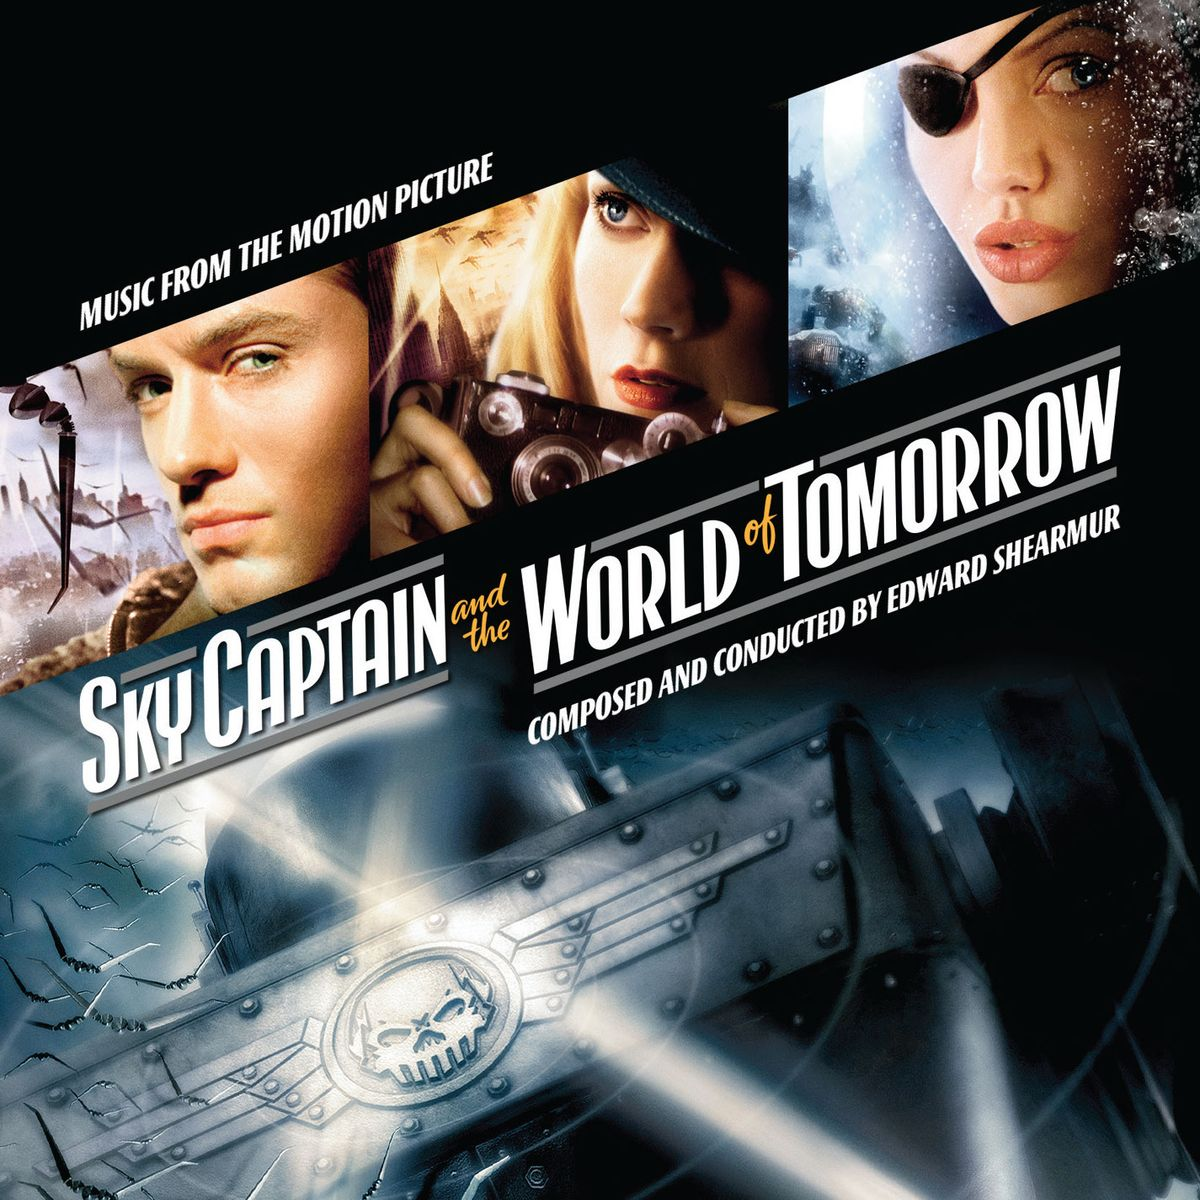 Sky Captain and the World of the Tomorrow: Recreation